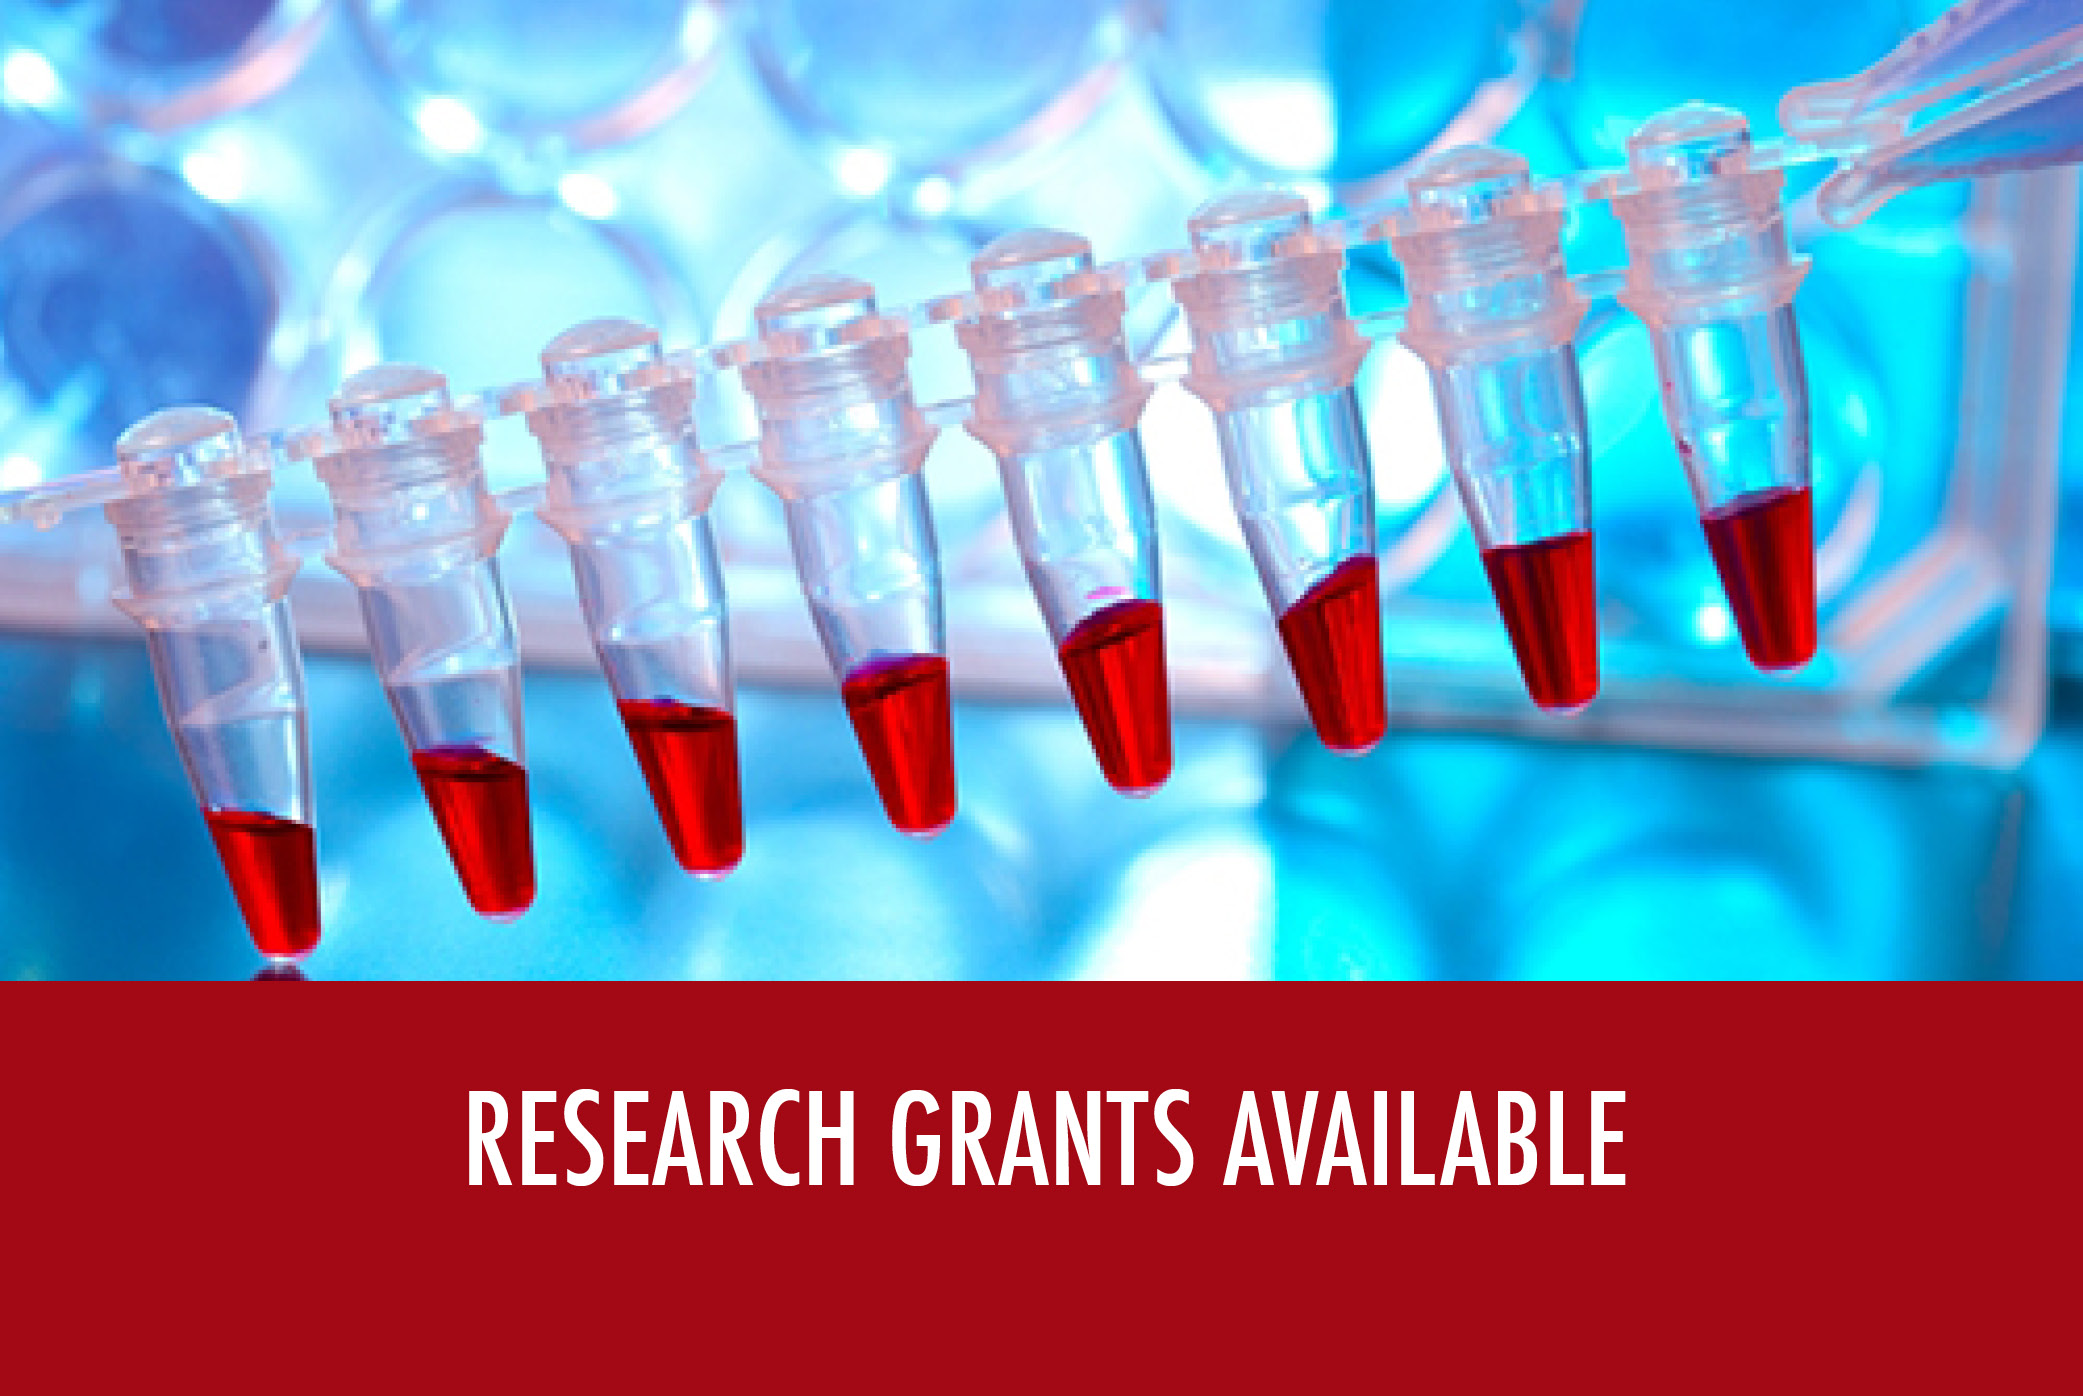 Office Of Undergraduate Research  Office Of Undergraduate Research  Research Grant Application Is Now Available 1984 Essay Thesis also A Modest Proposal Essay Topics  Personal Essay Examples For High School